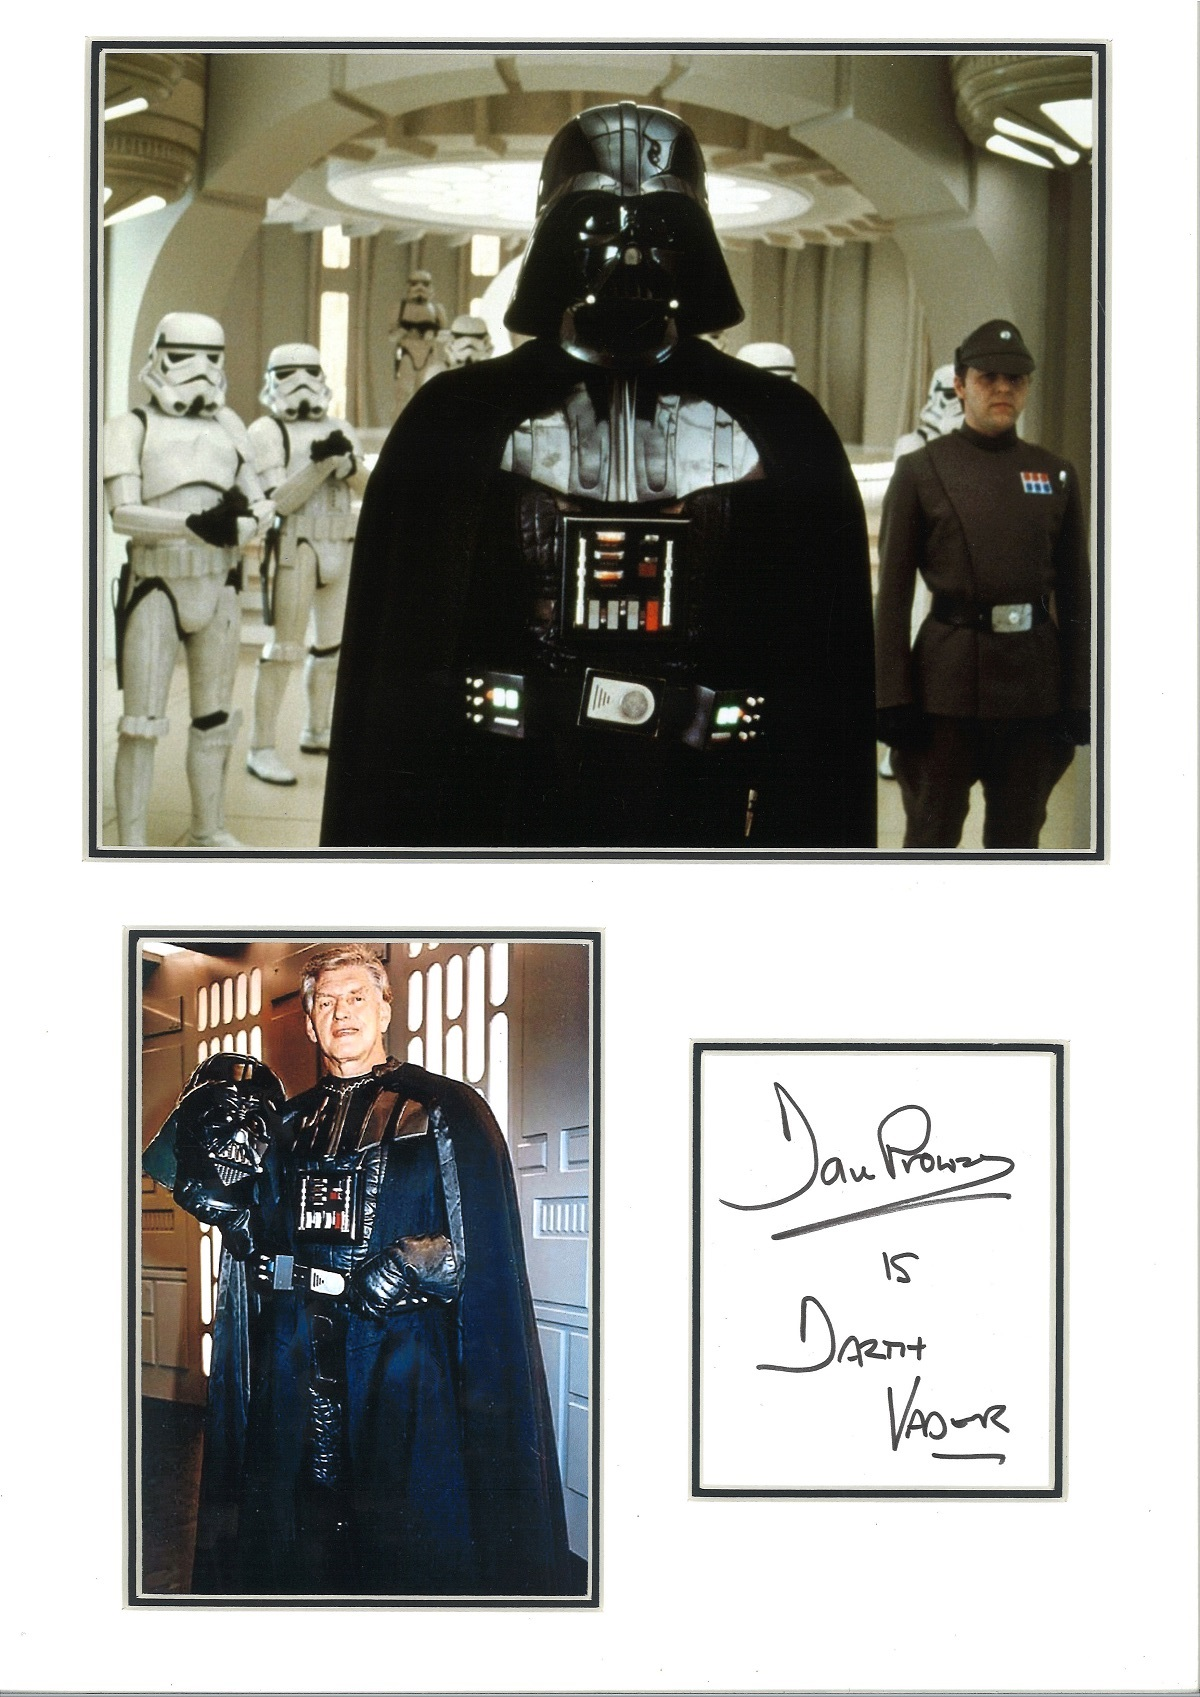 Dave Prowse 18x13 mounted signature piece includes two coloured photos pictured in his role as Darth